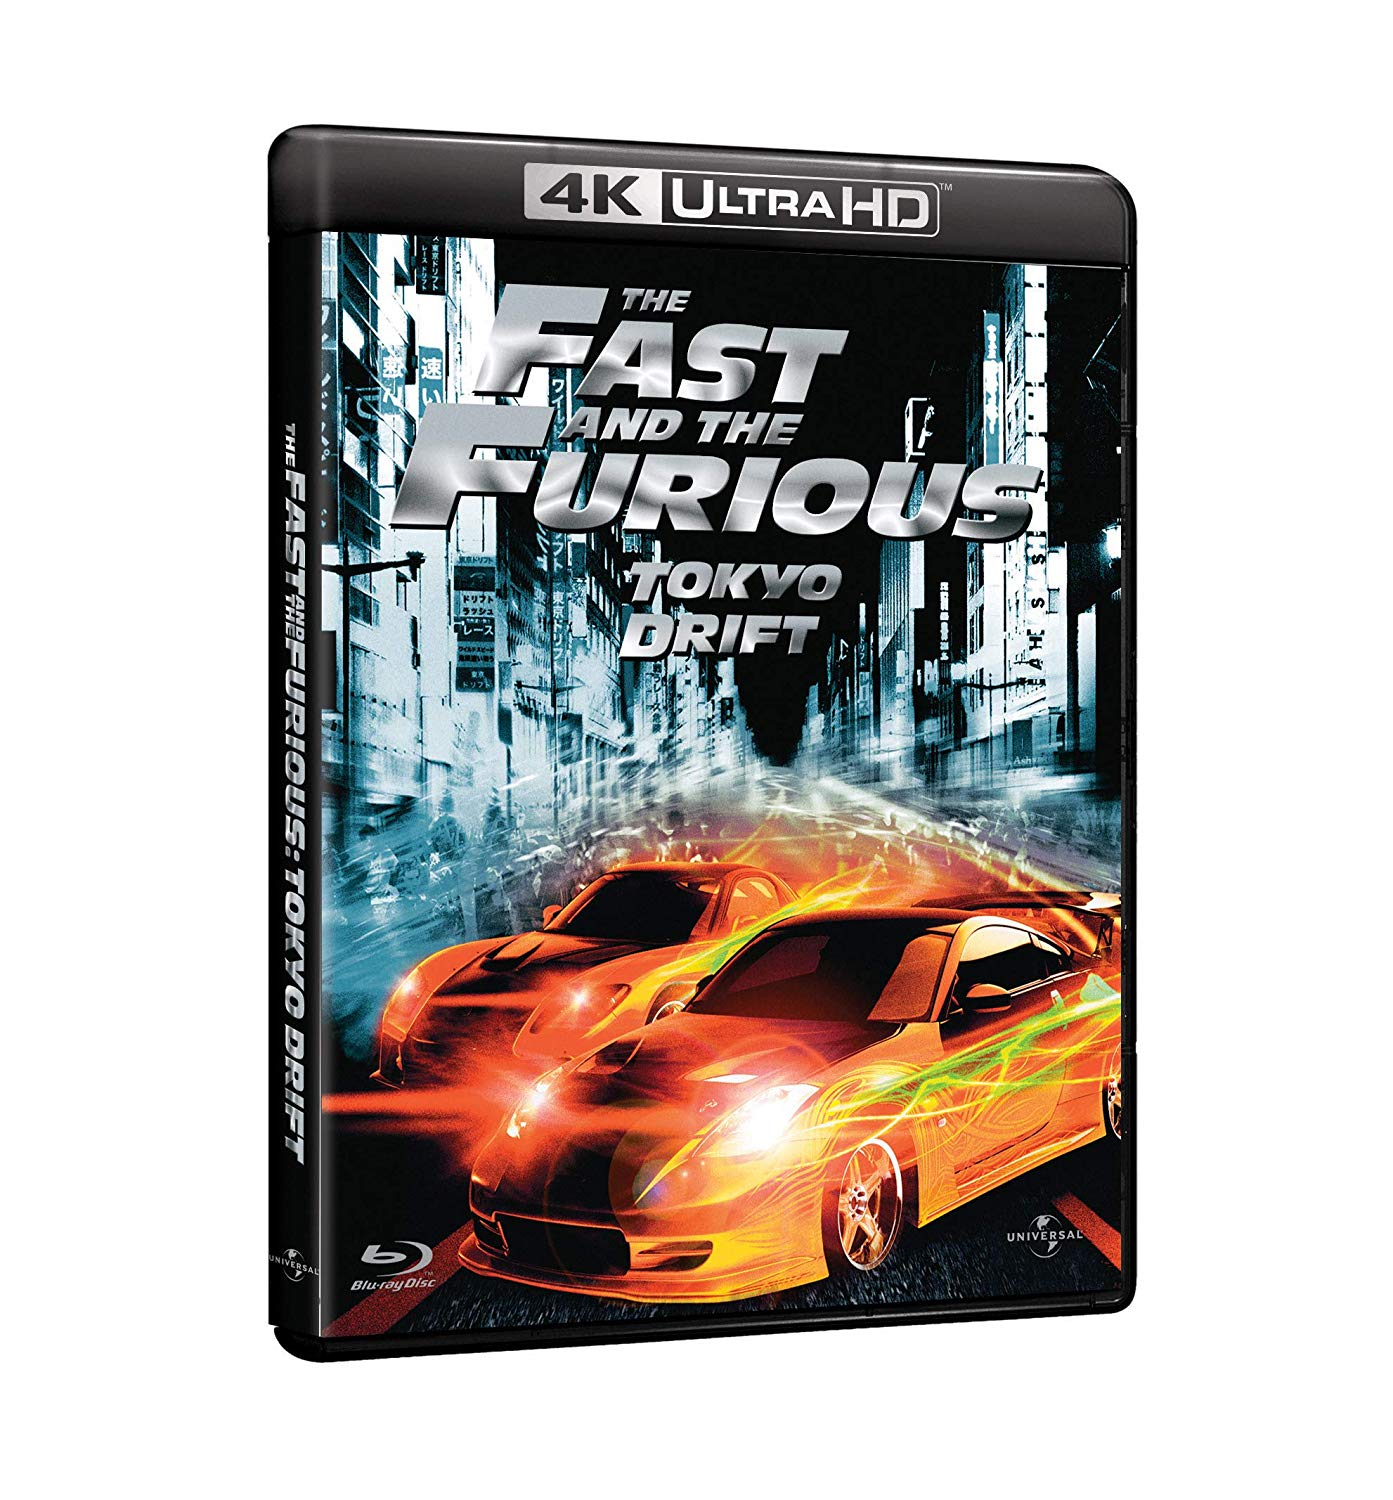 THE FAST AND THE FURIOUS - TOKYO DRIFT (BLU-RAY 4K UHD+BLU-RAY)